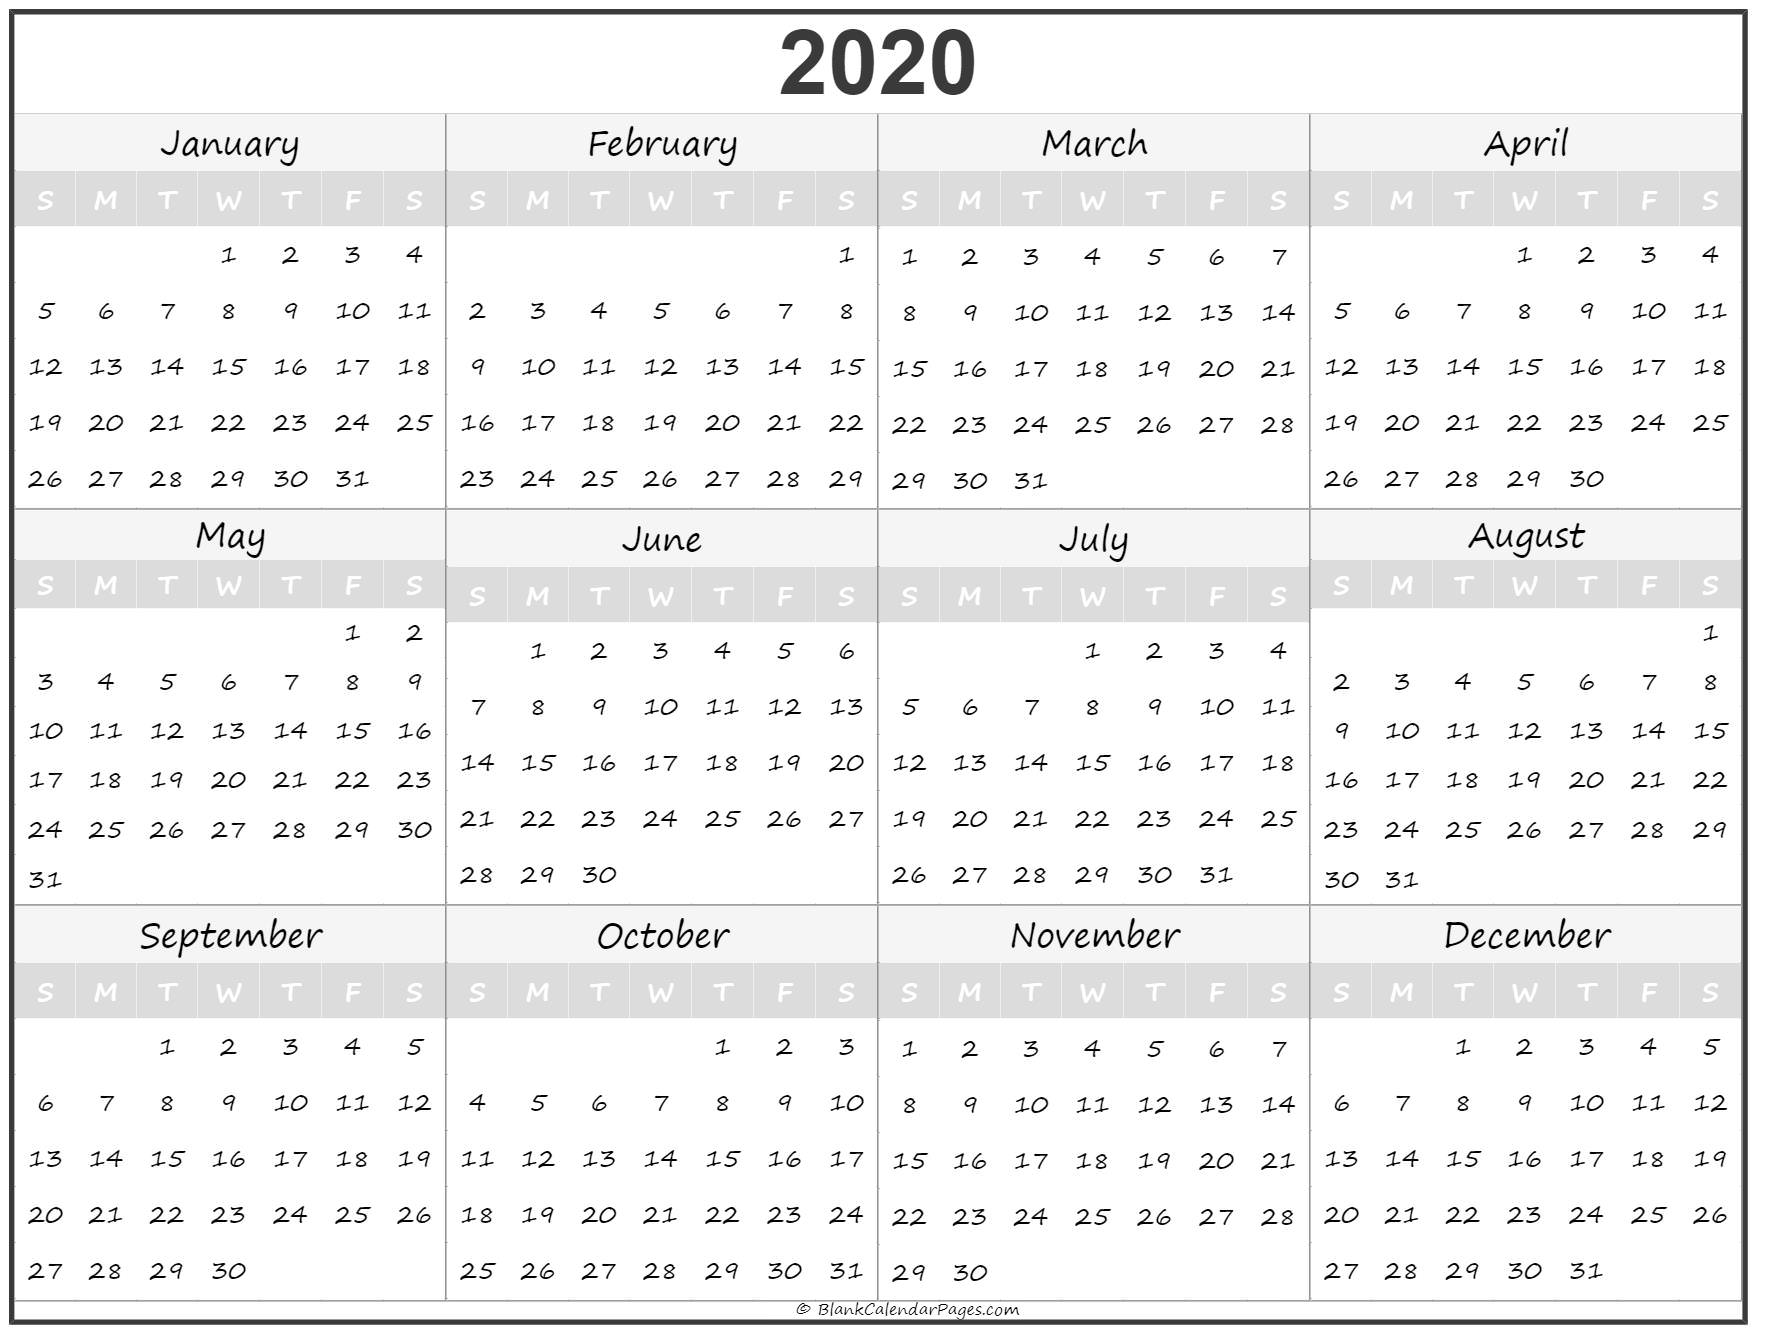 1 Year Calendar 2020 2020 year calendar | yearly printable